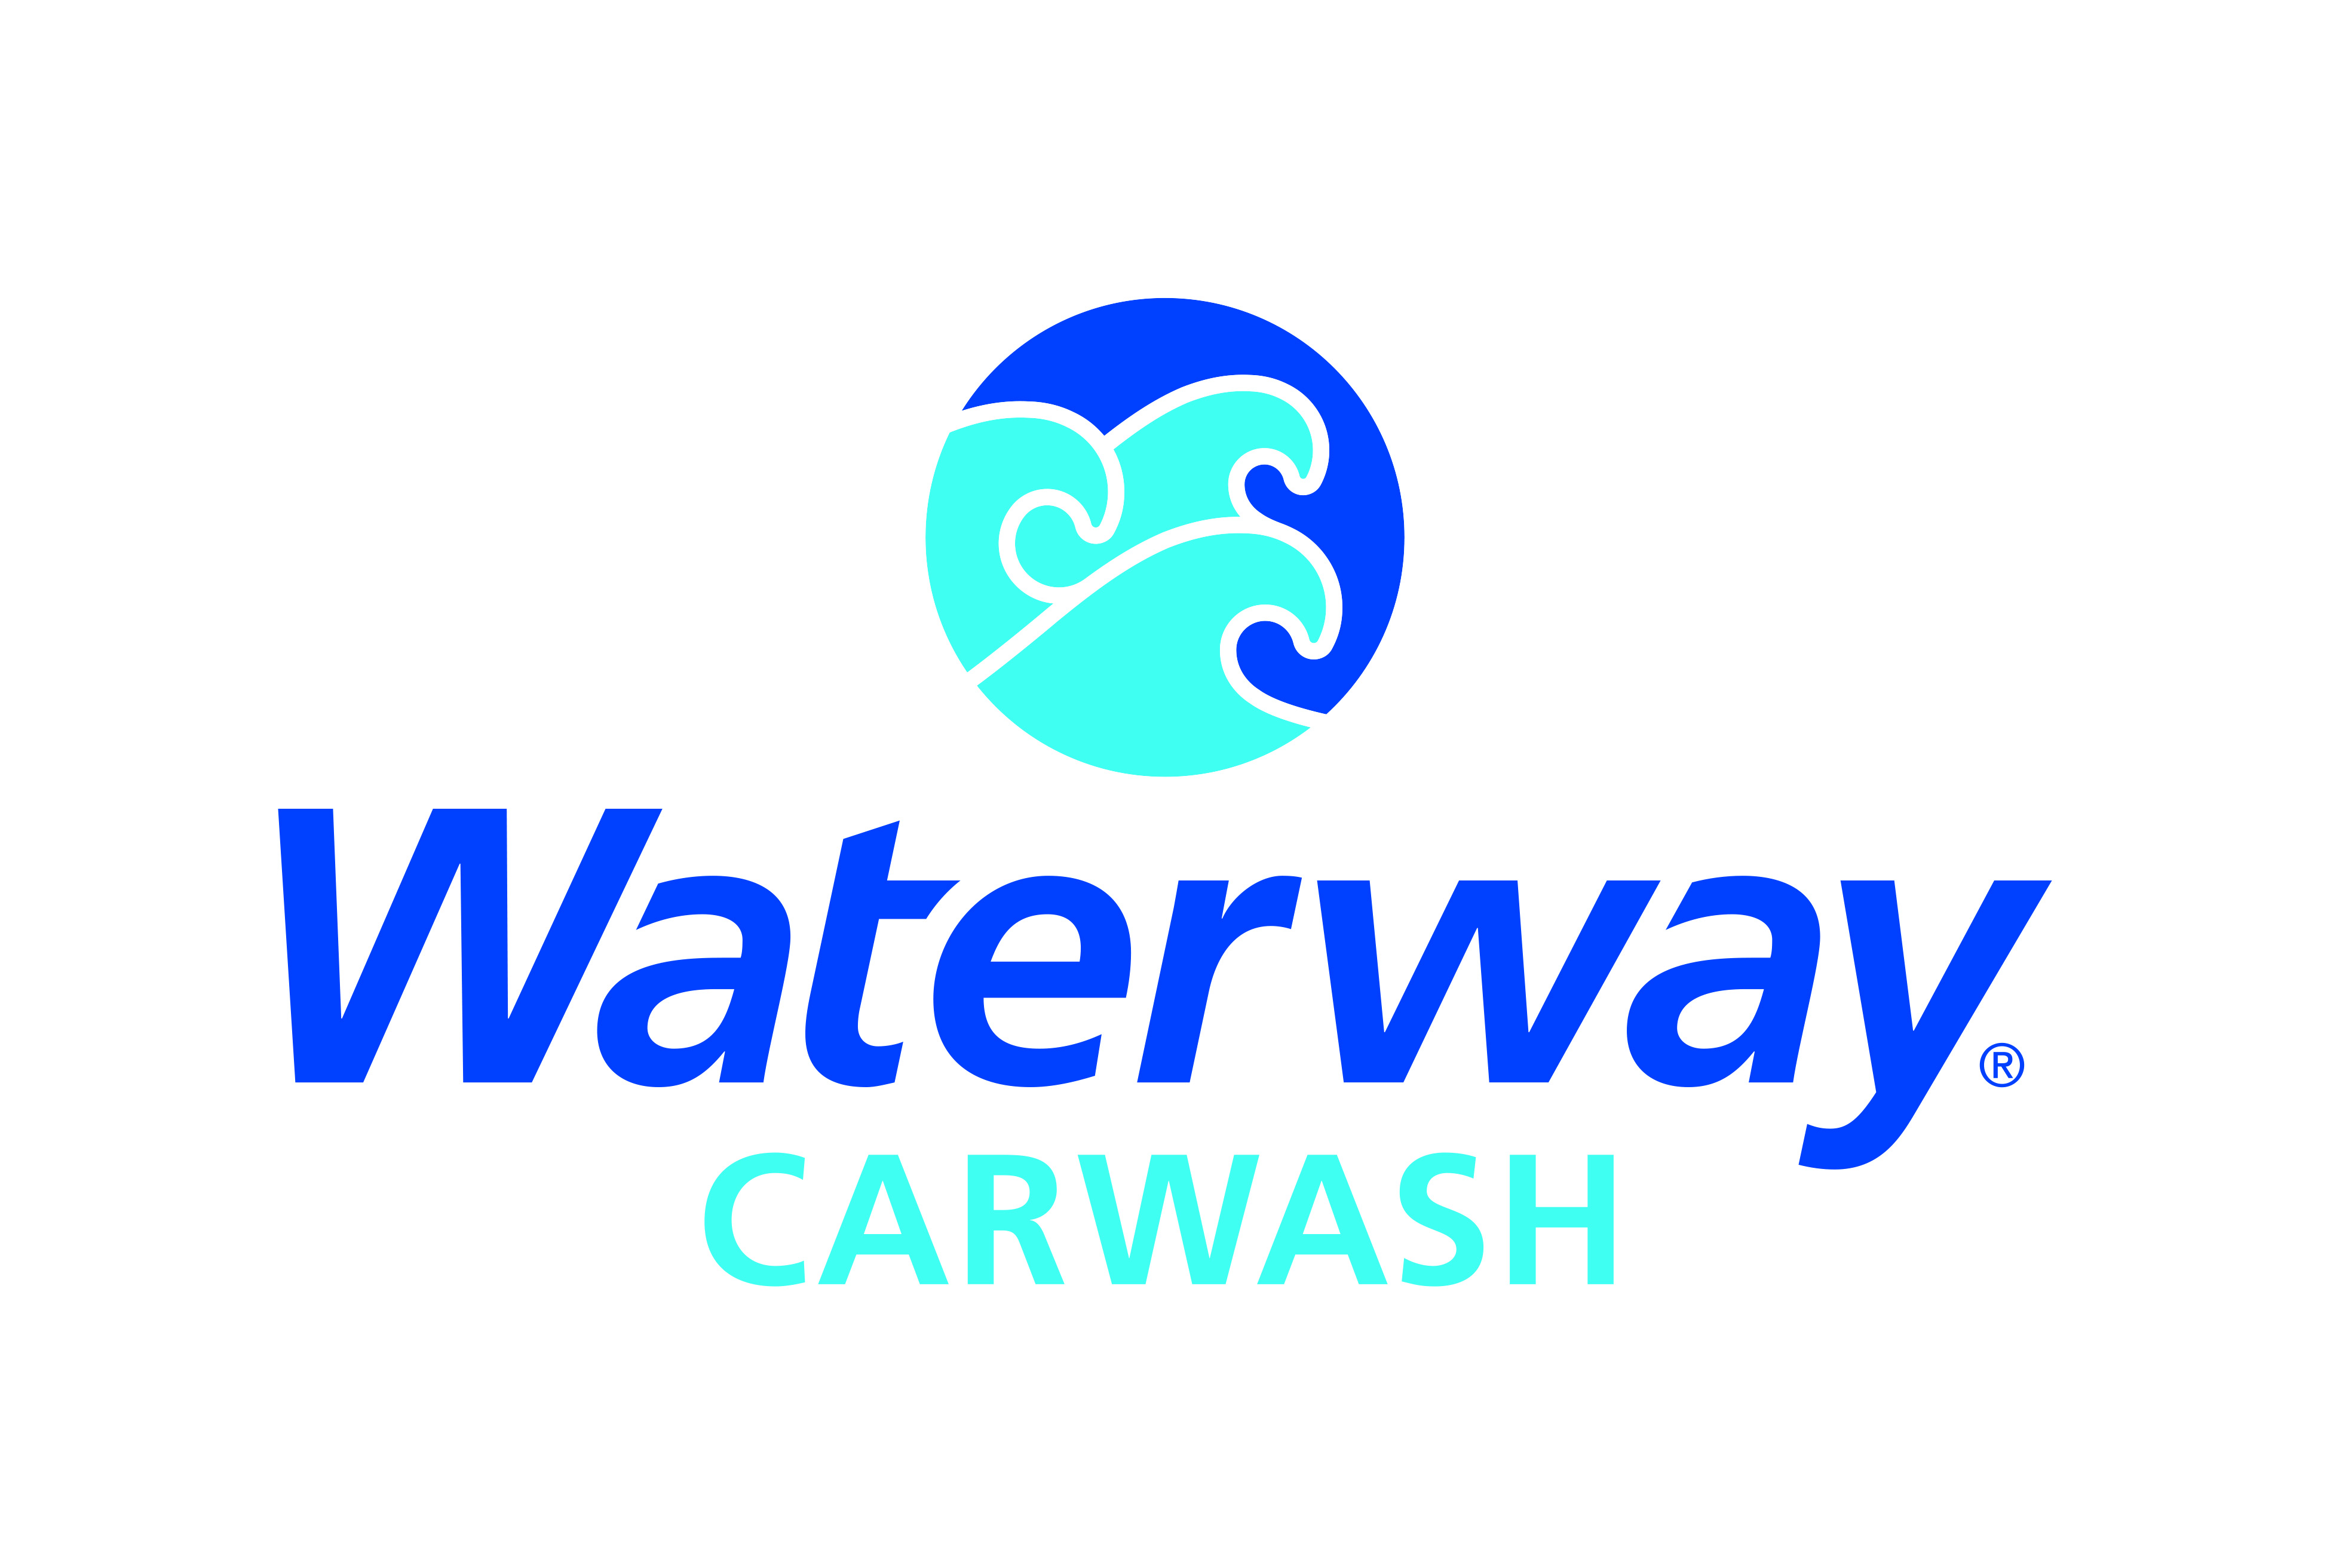 Waterway Carwash